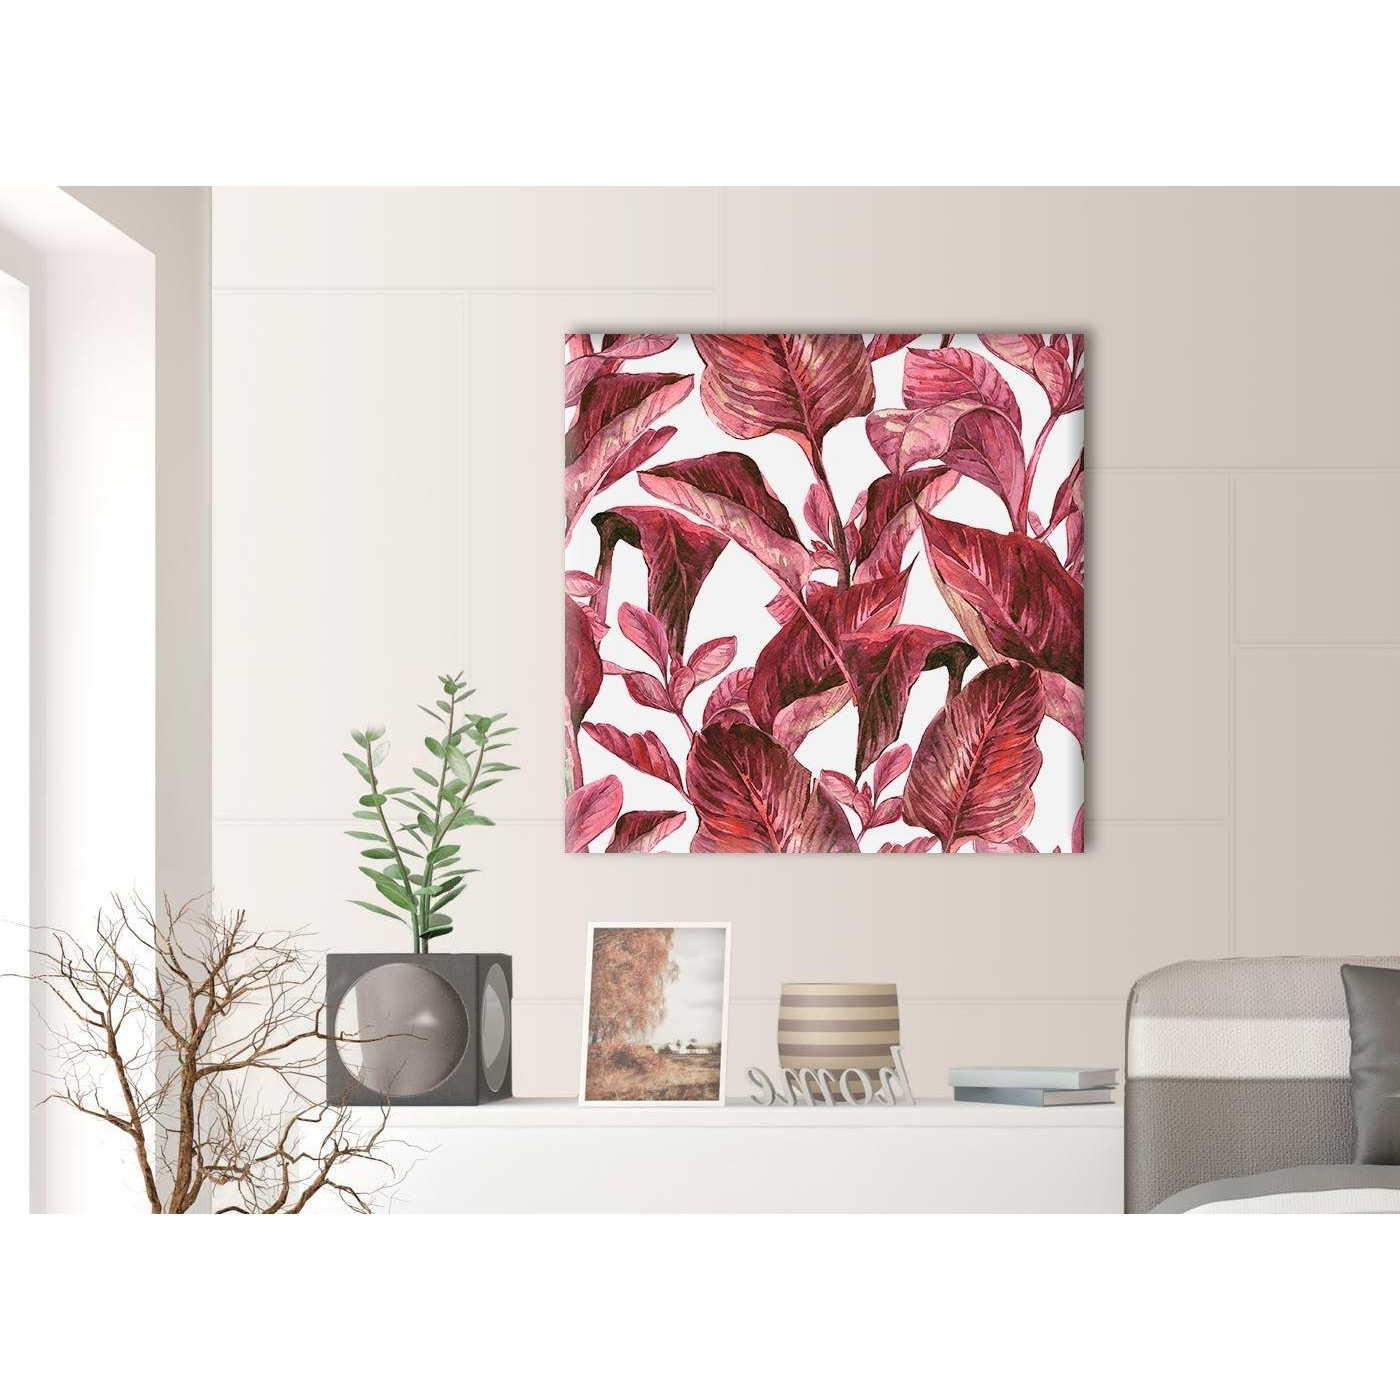 2017 Dark Burgundy Red White Tropical Leaves Canvas Wall Art – Modern With Burgundy Wall Art (View 3 of 15)